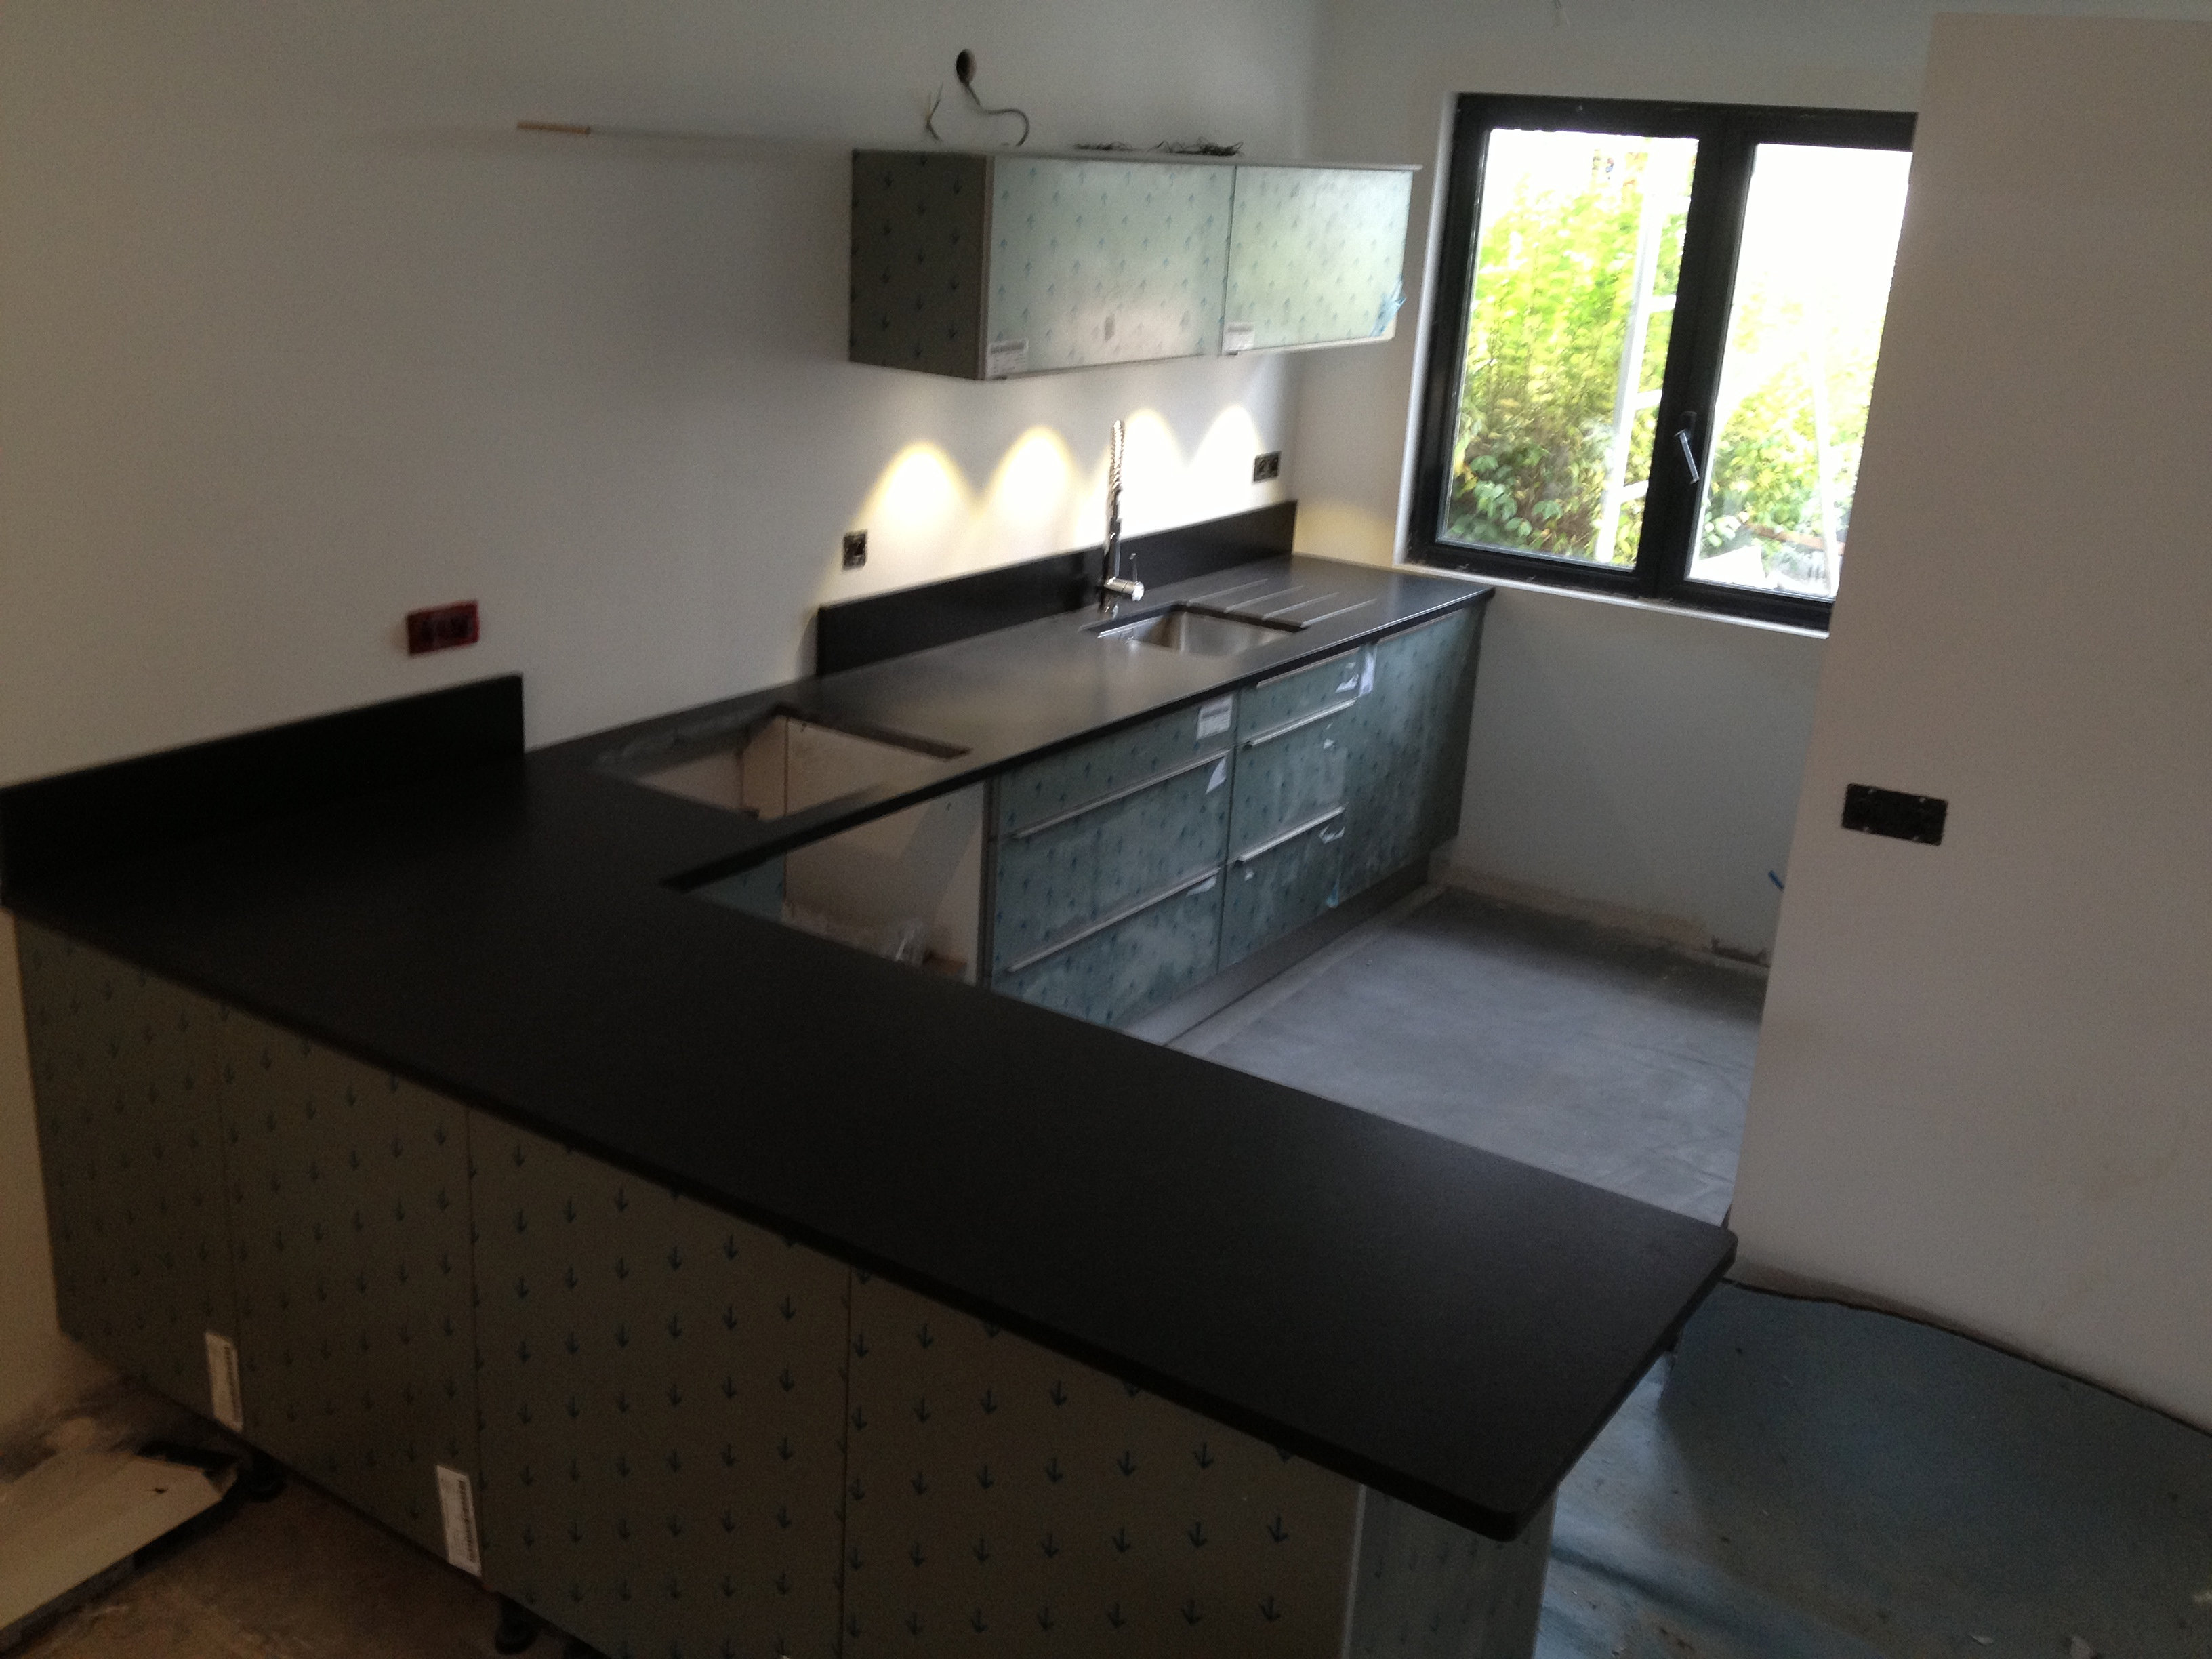 Plan De Travail Granit Quartz Table En Mabre Paris